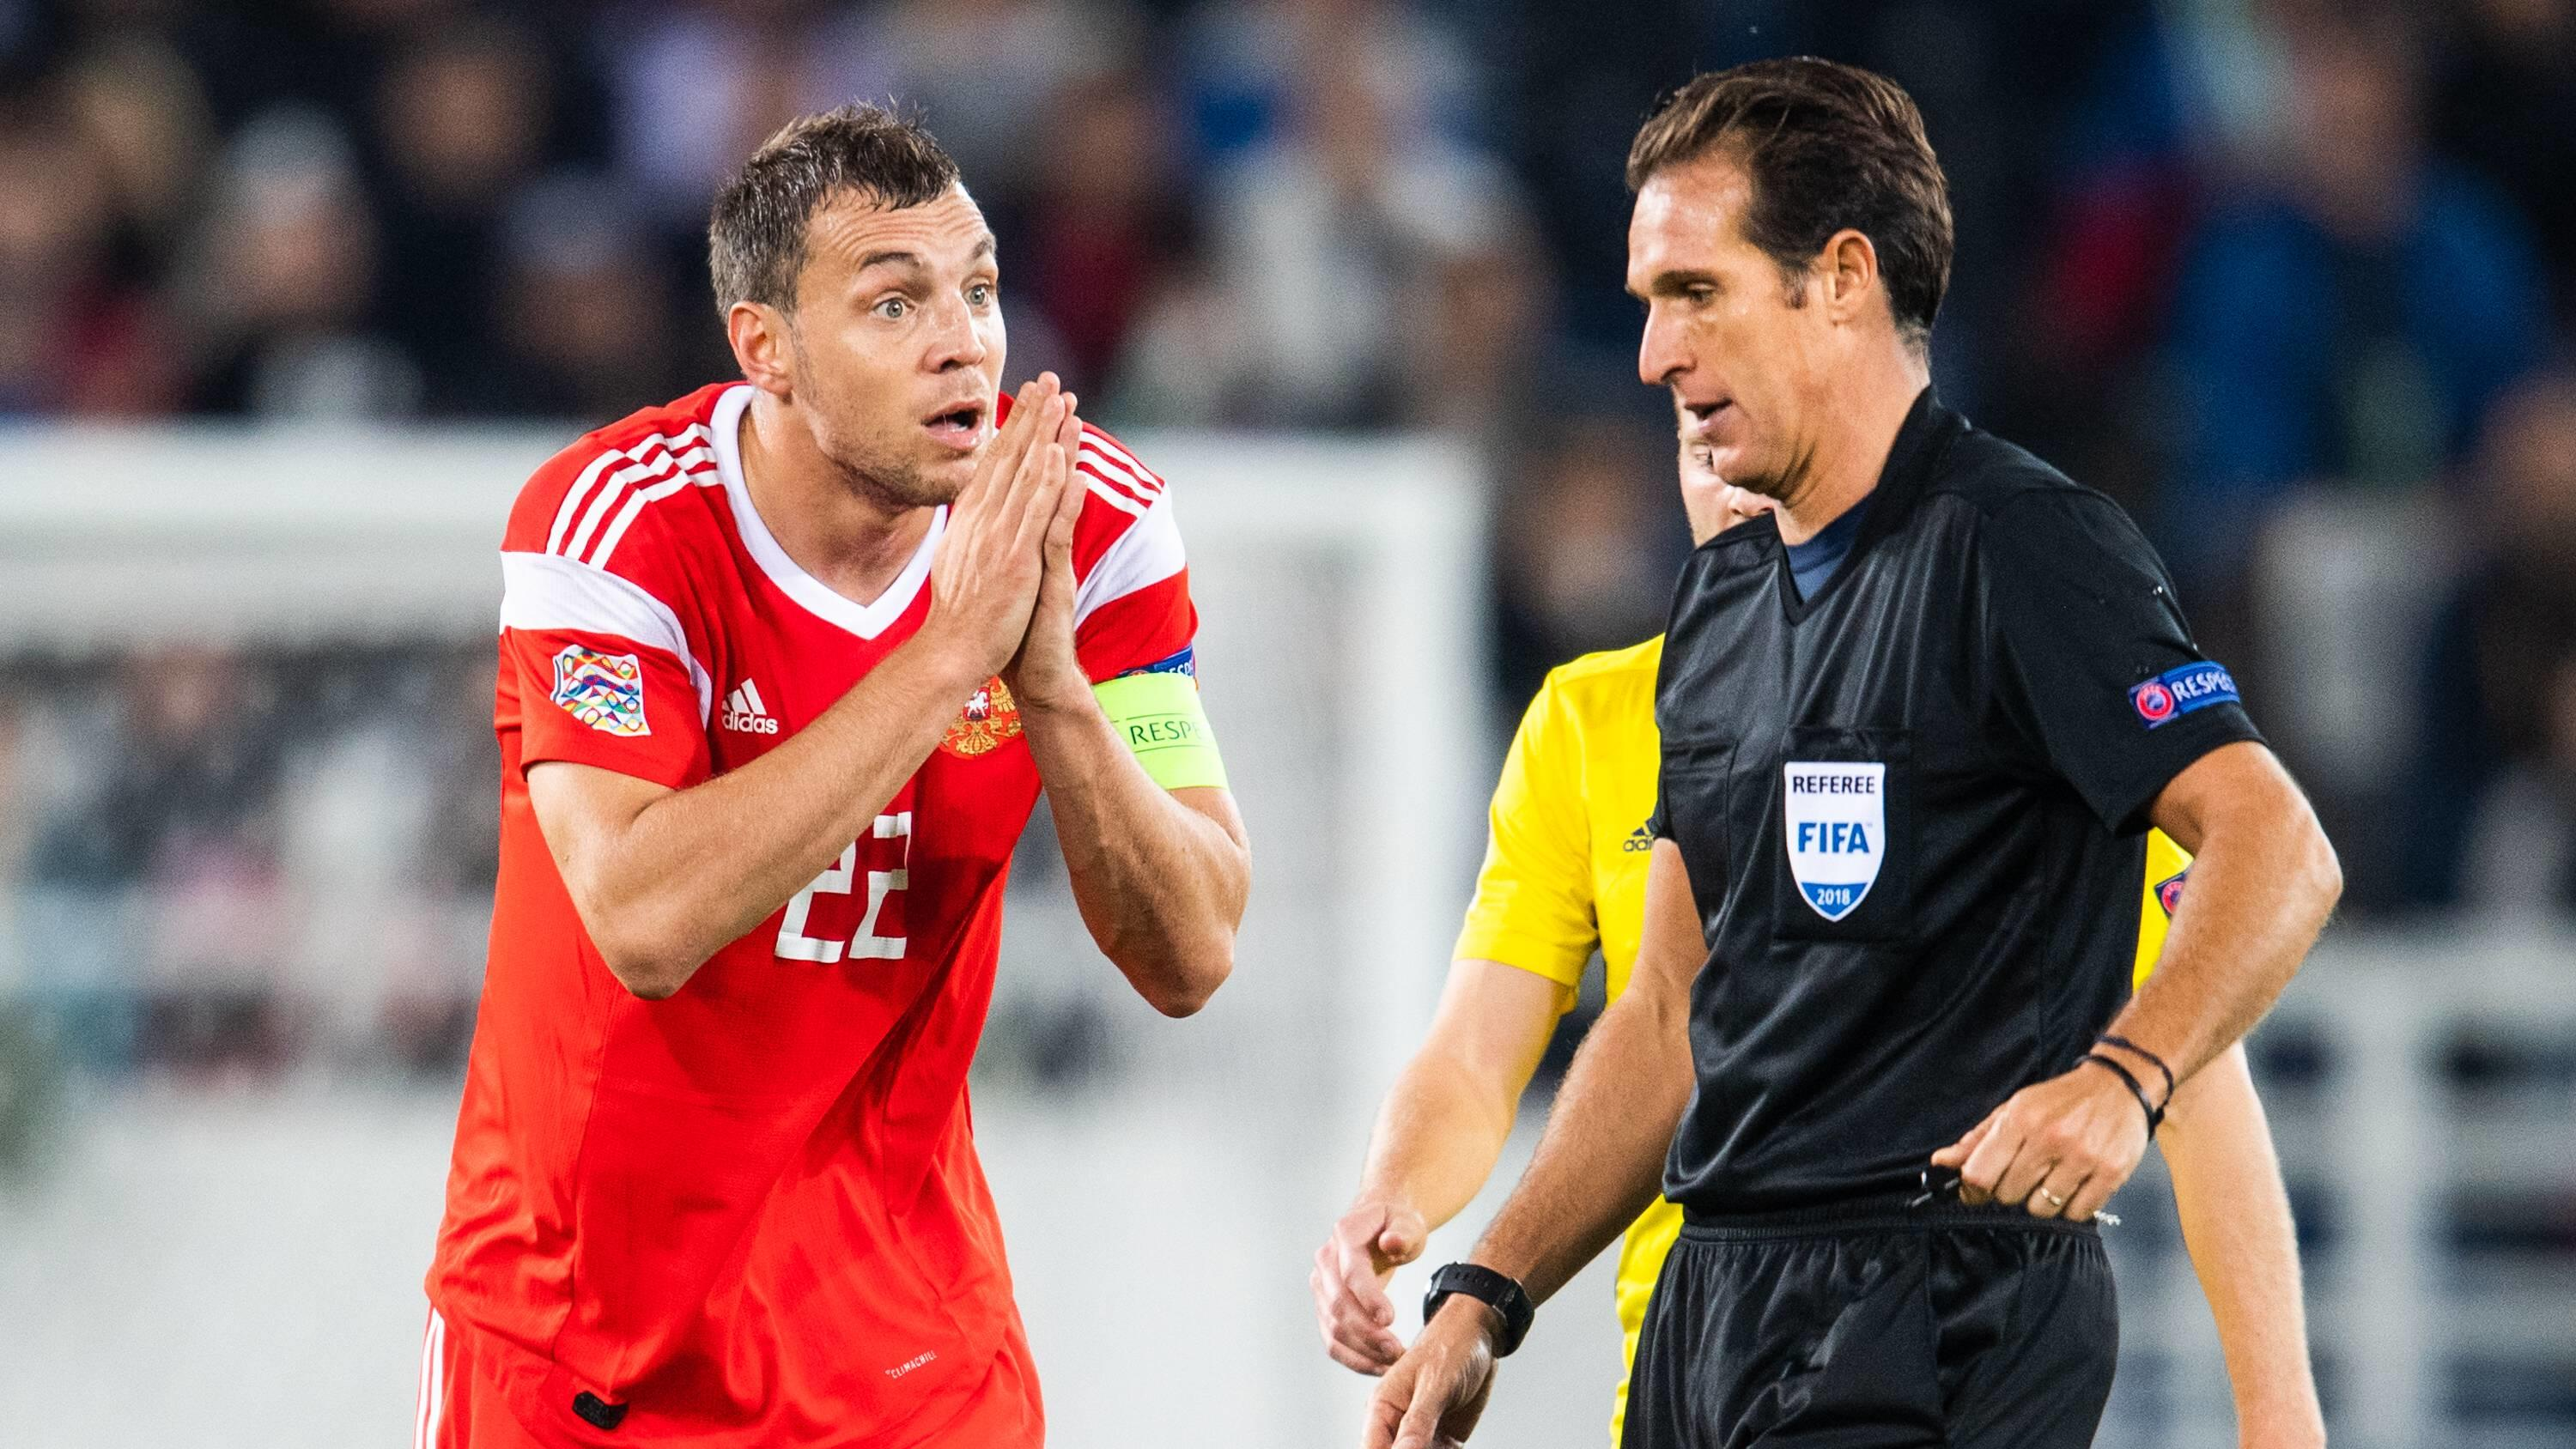 Fußball, Nations League, Russland - Schweden 181011 Artem Dzyuba of Russia reacts against referee Luca Banti during the Nations League match between Russia and Sweden on October 11, 2018 in Kaliningrad. Photo: Petter Arvidson / BILDBYRAN / kod PA / 9